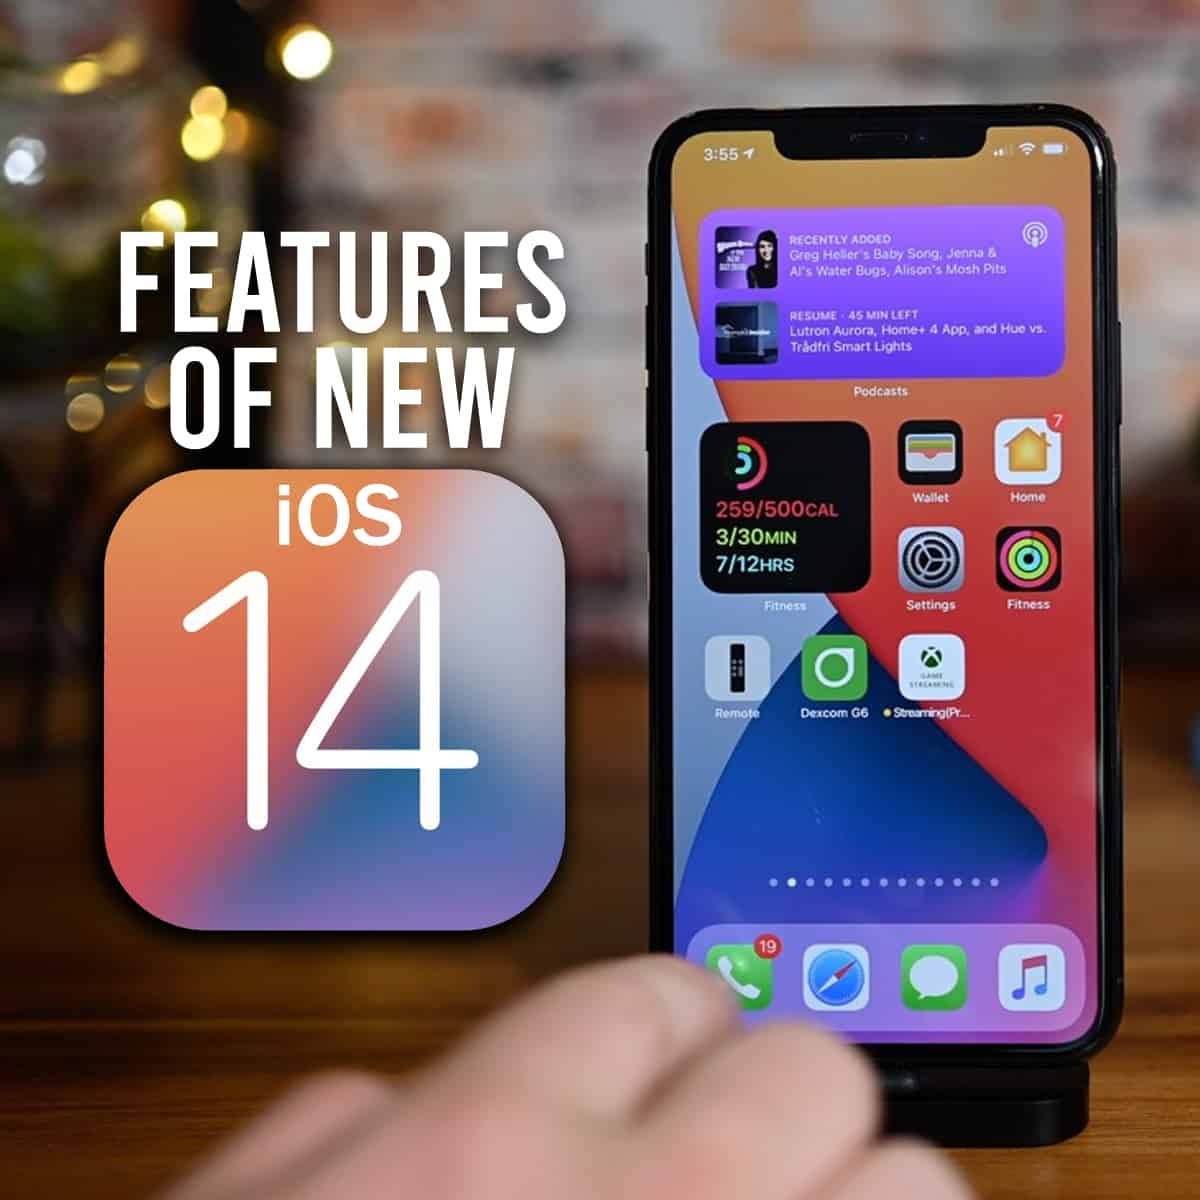 Features of New iOS 14 Banner